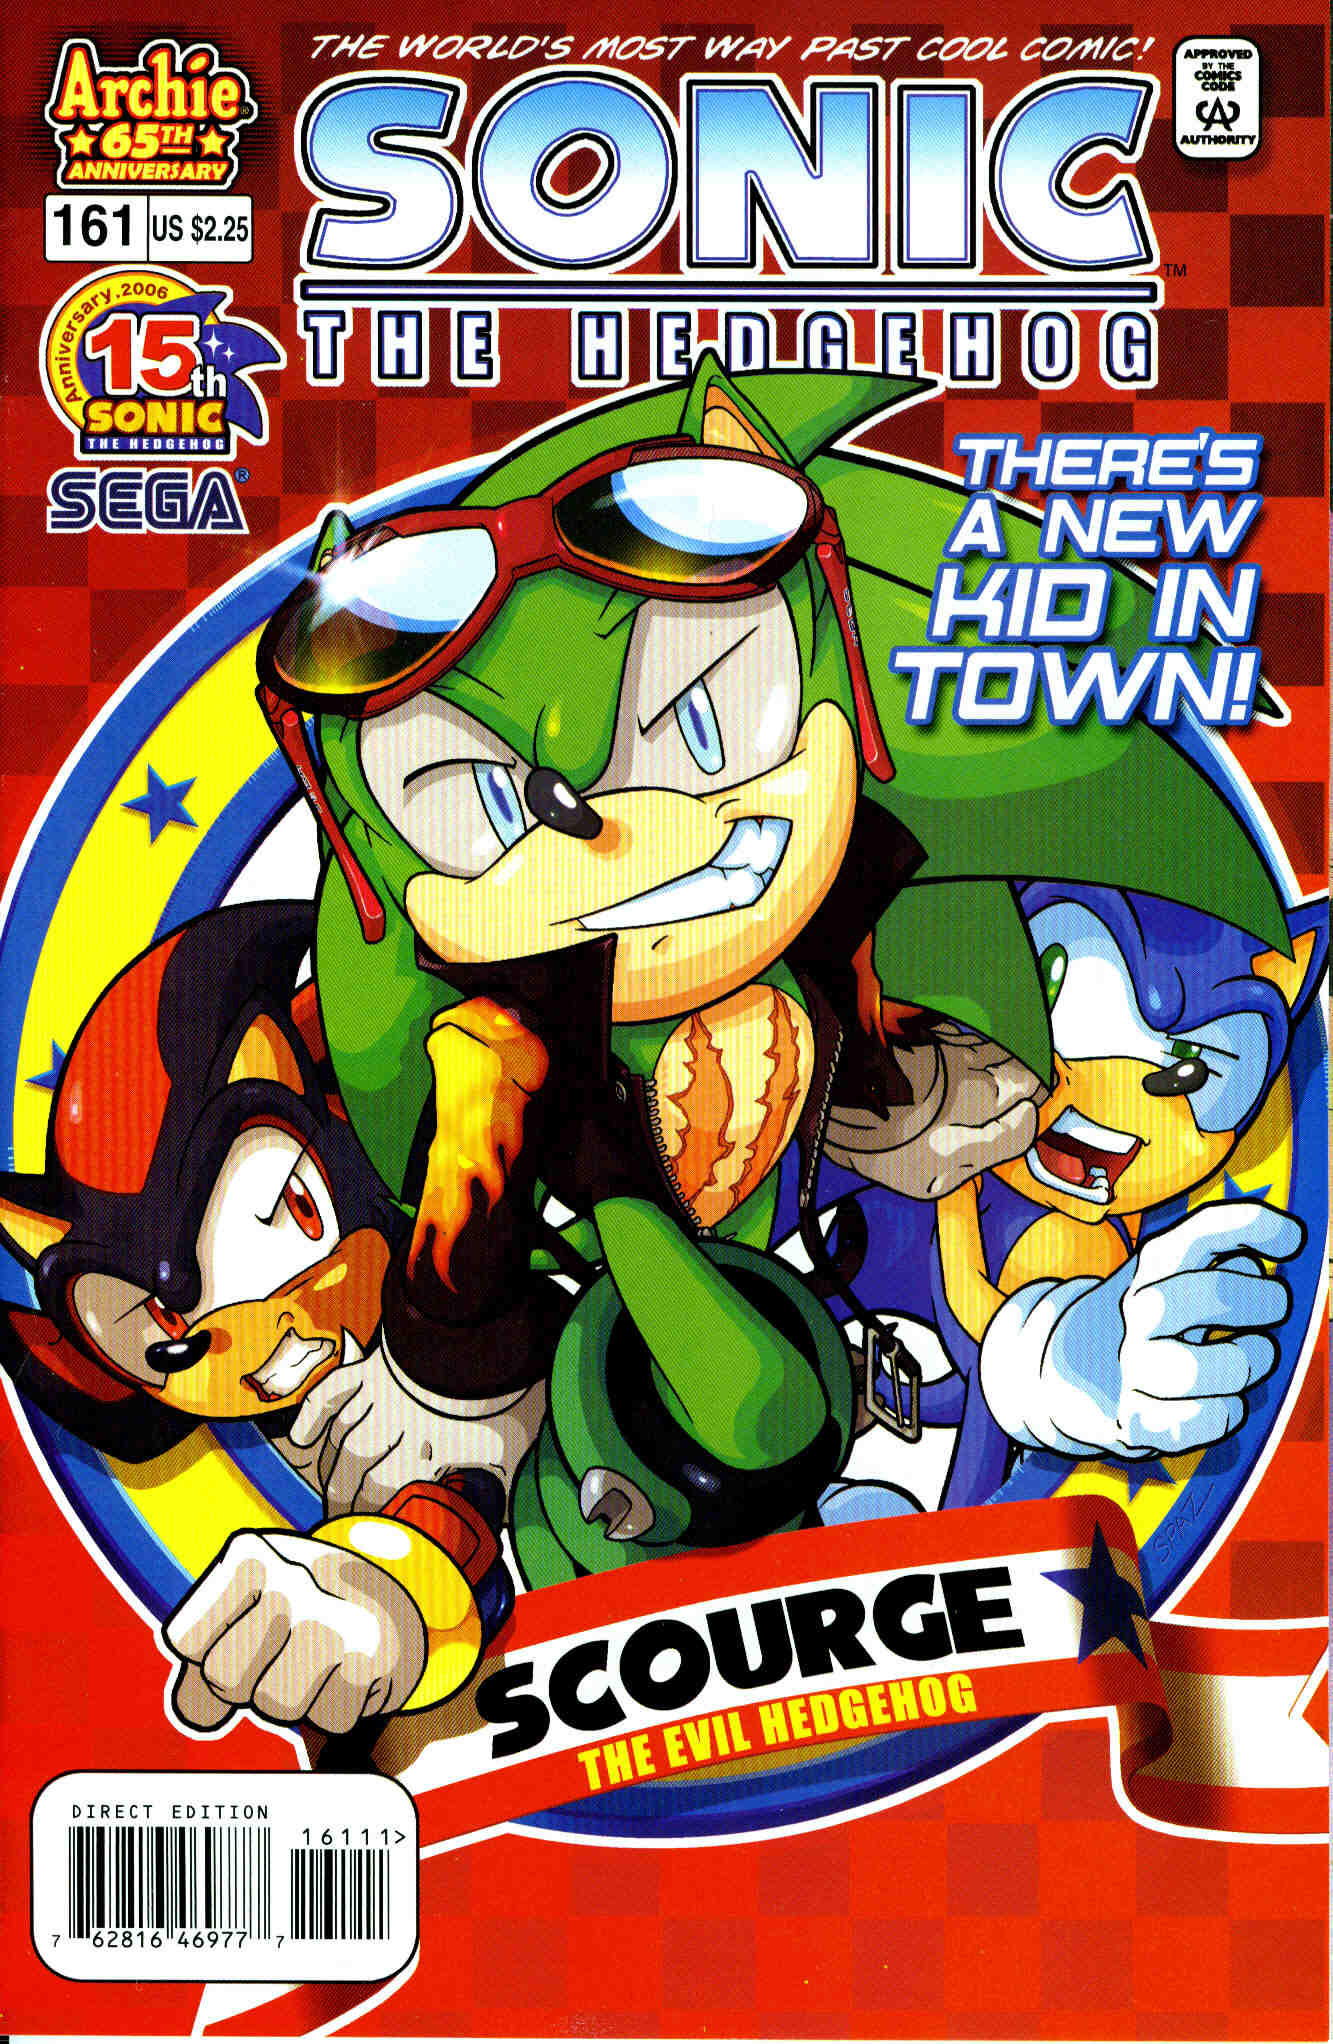 Sonic - Archie Adventure Series June 2006 Comic cover page